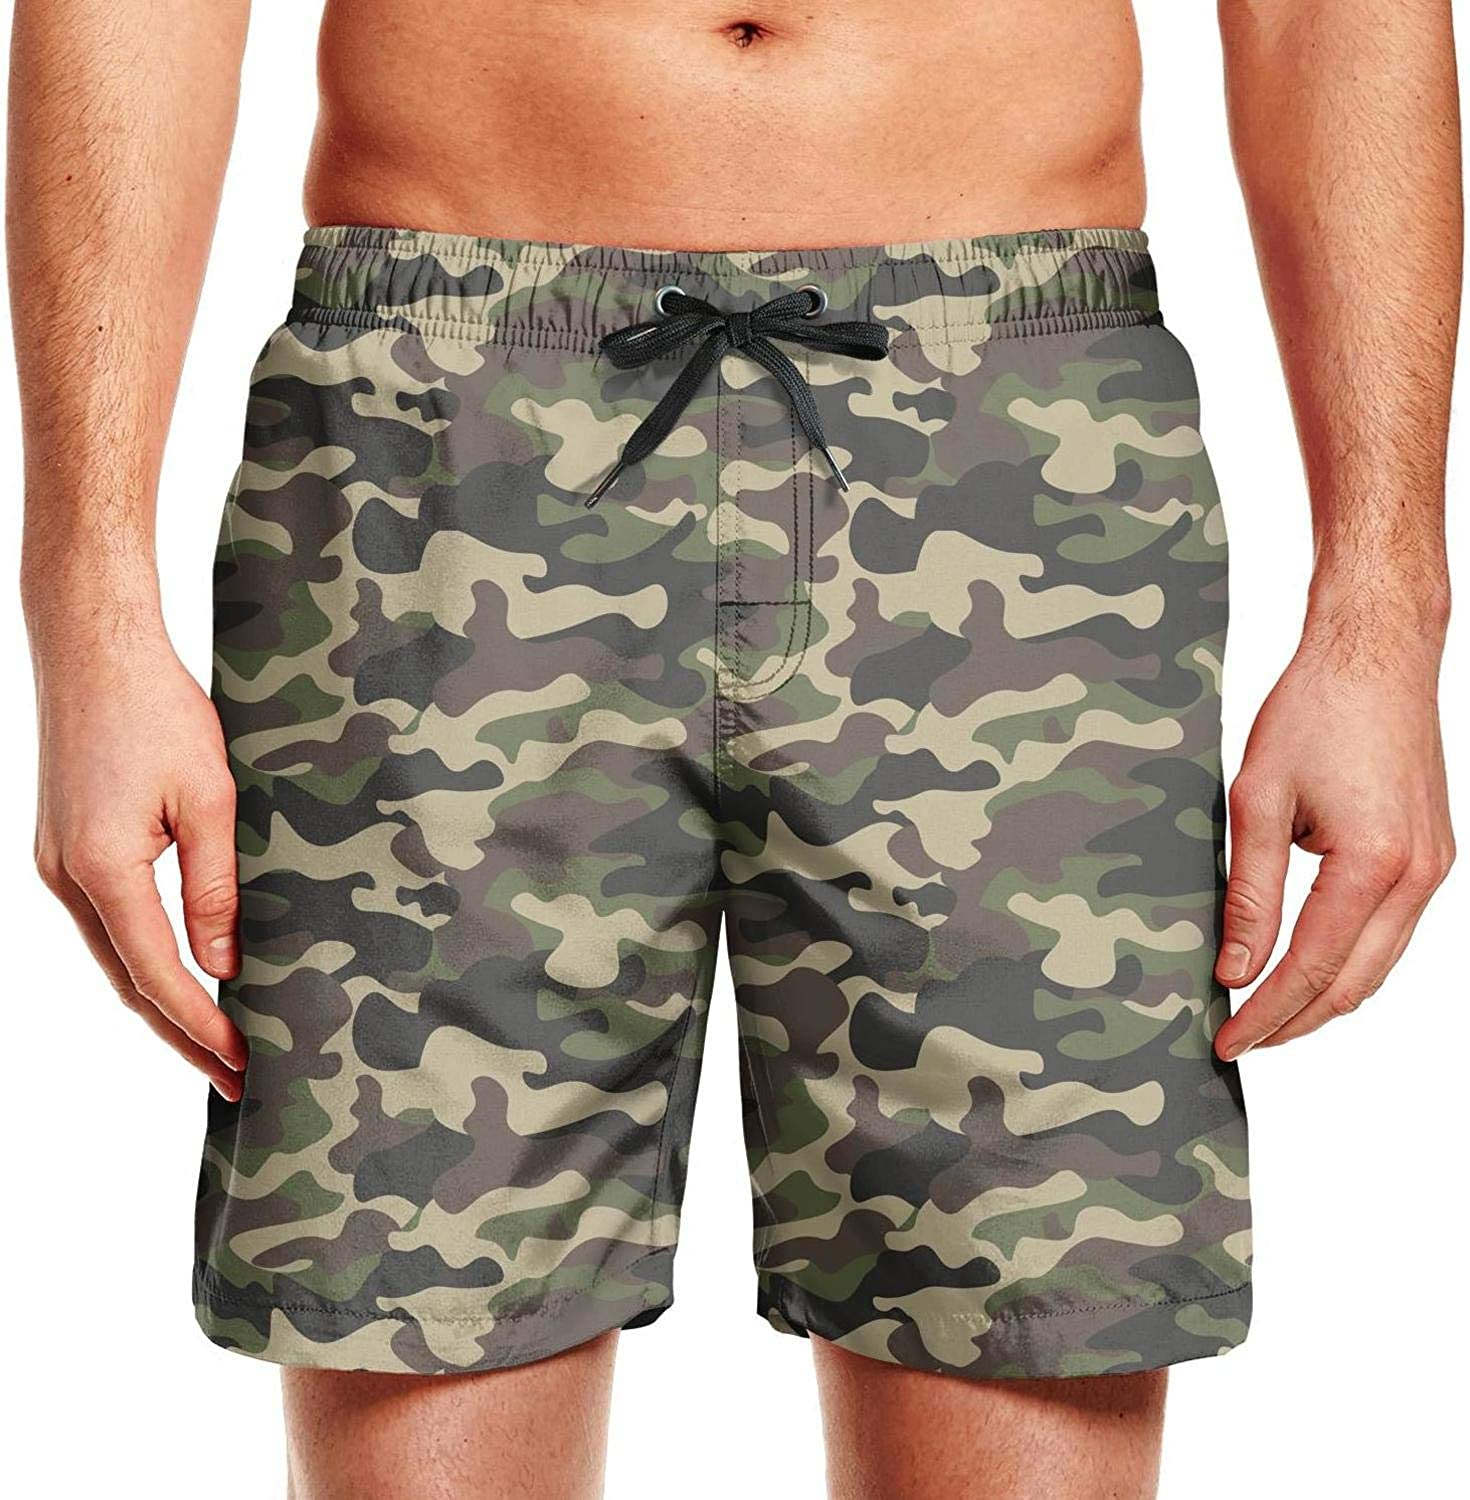 YGRAA Camo Beach Shorts Running Stretch Swimming Trunks for Mens